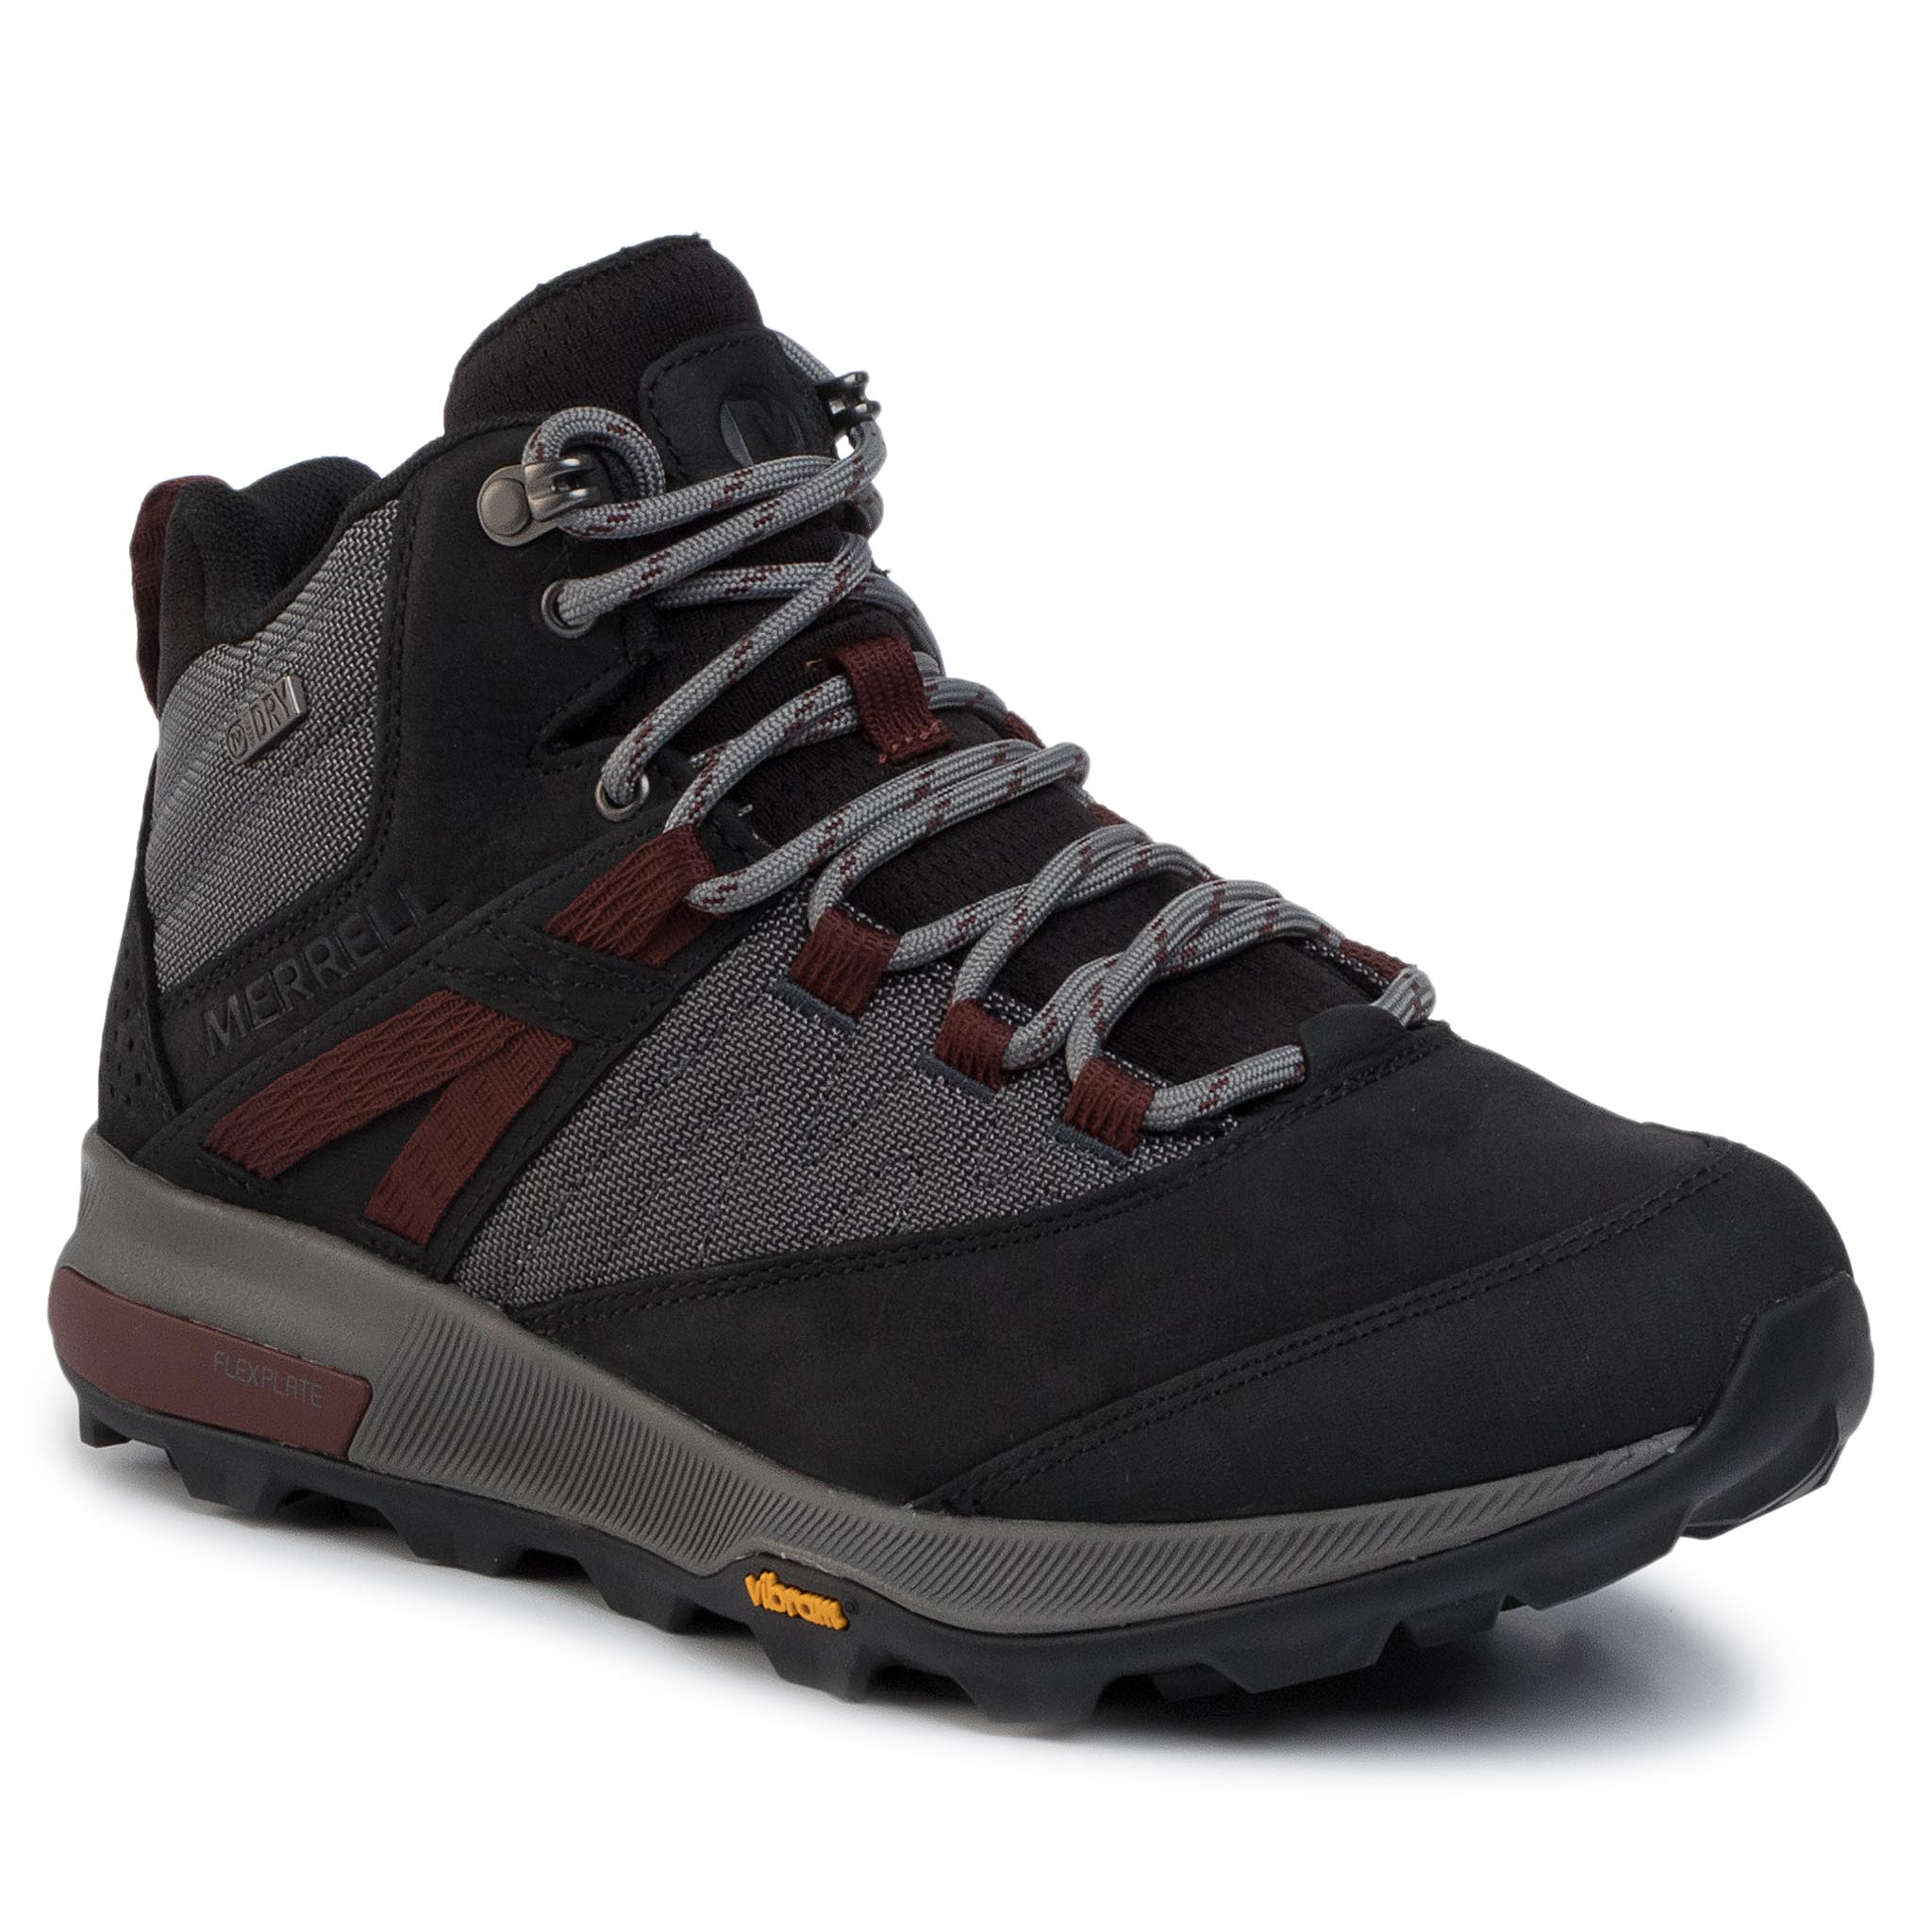 Trekkings Merrell - Zion Mid Wp J16885 Black imagine epantofi.ro 2021